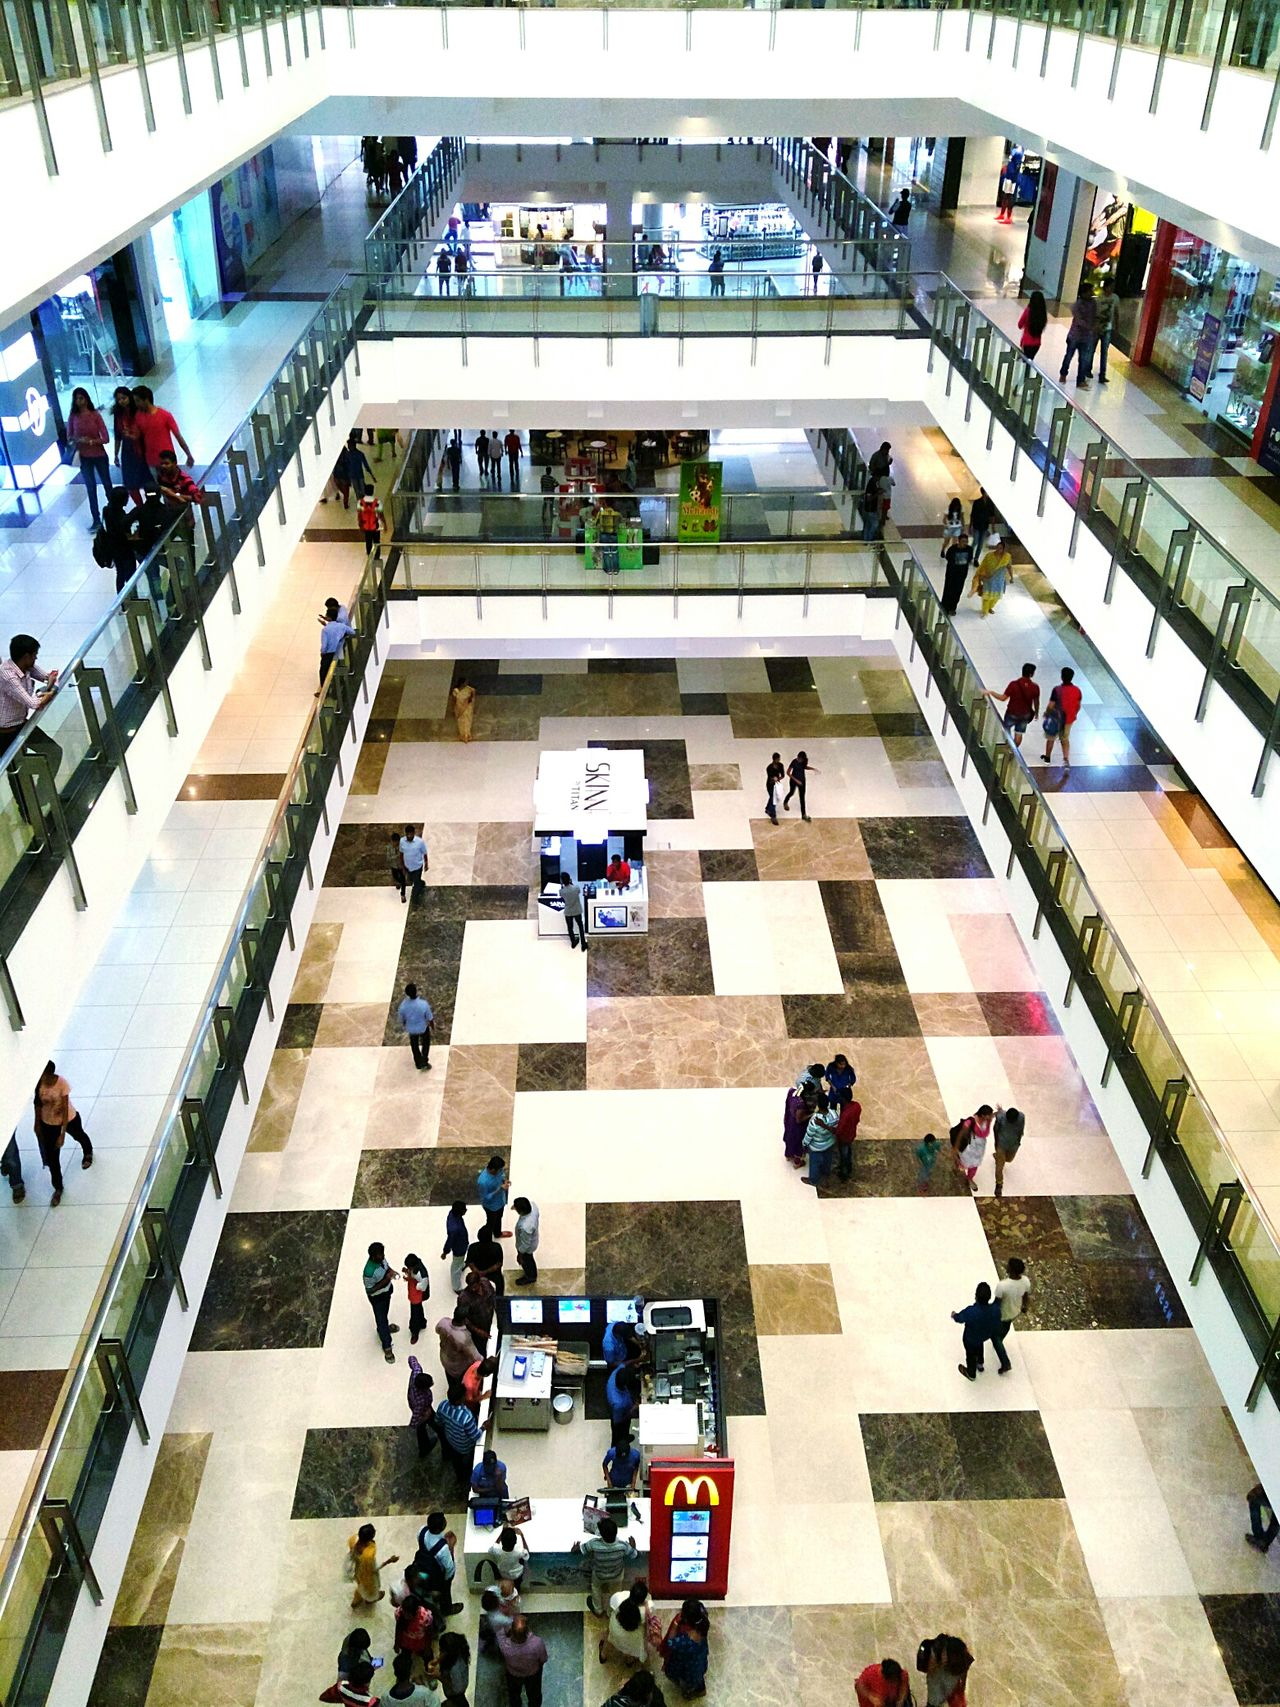 Fresh On Eyeem  EyeEm Nextbitrobin Shopping Mall Busy People Birds Eye View The Week On EyeEem Mobile Photography Mobile Camera